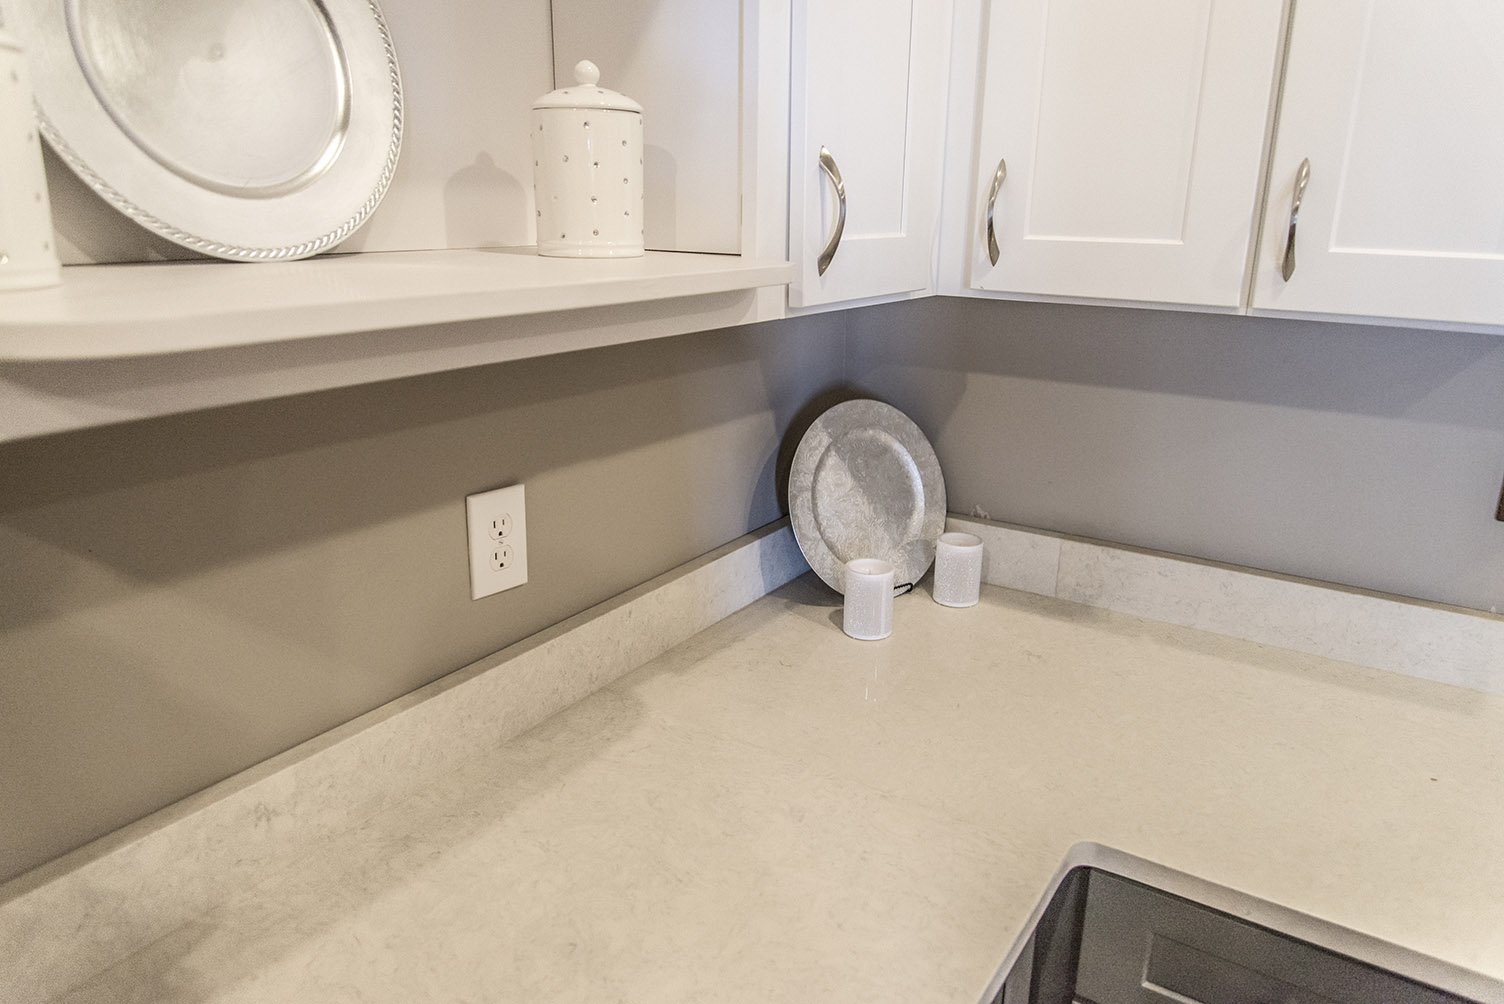 Etonnant Carrera Classic Quartz Countertops With Gray Base Cabinets U0026 White Upper  Cabinets And Open Shelving